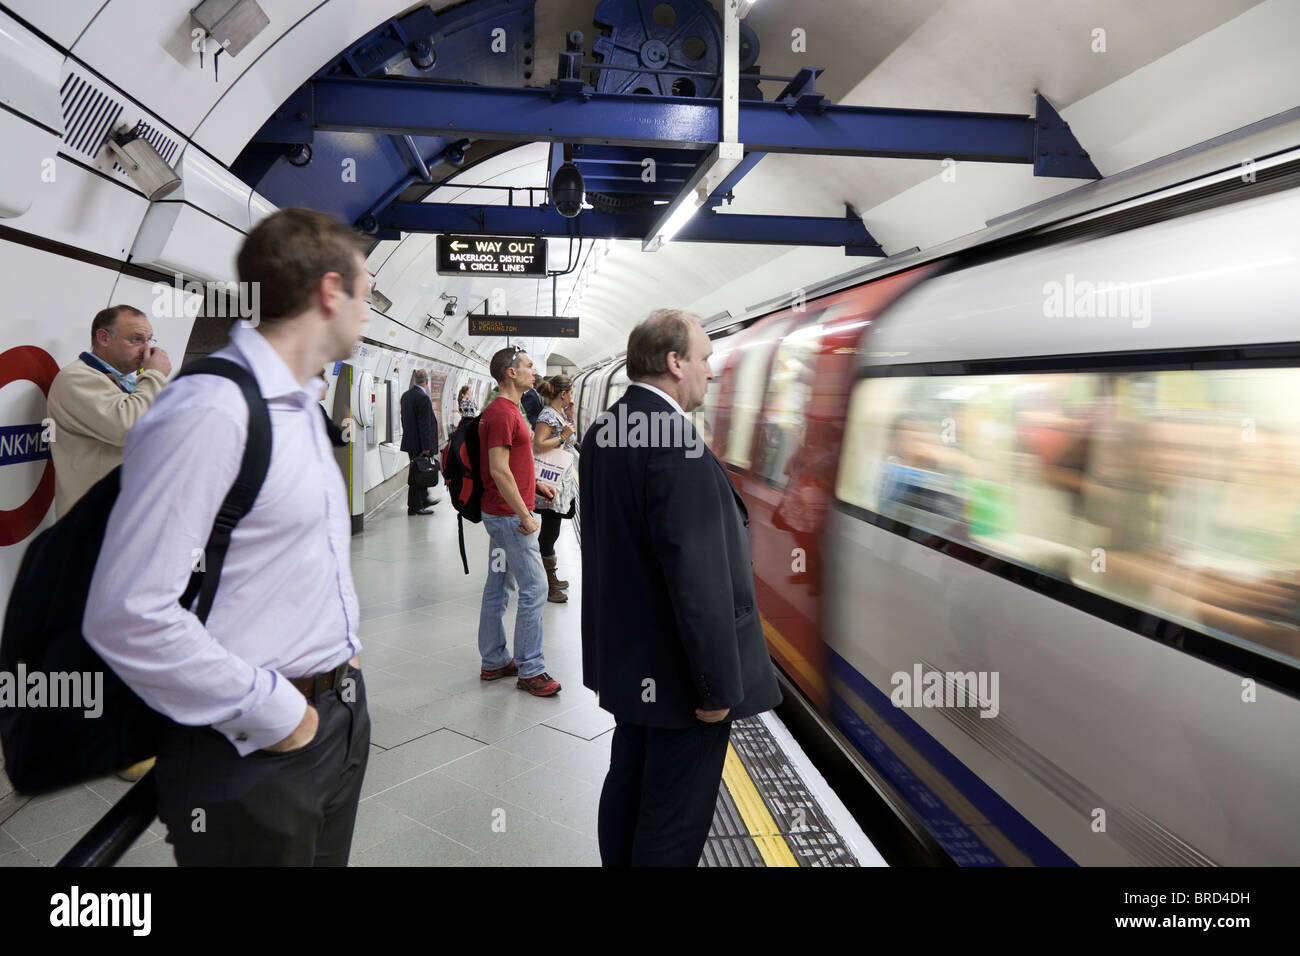 waiting for the tube train at London Underground - Stock Image